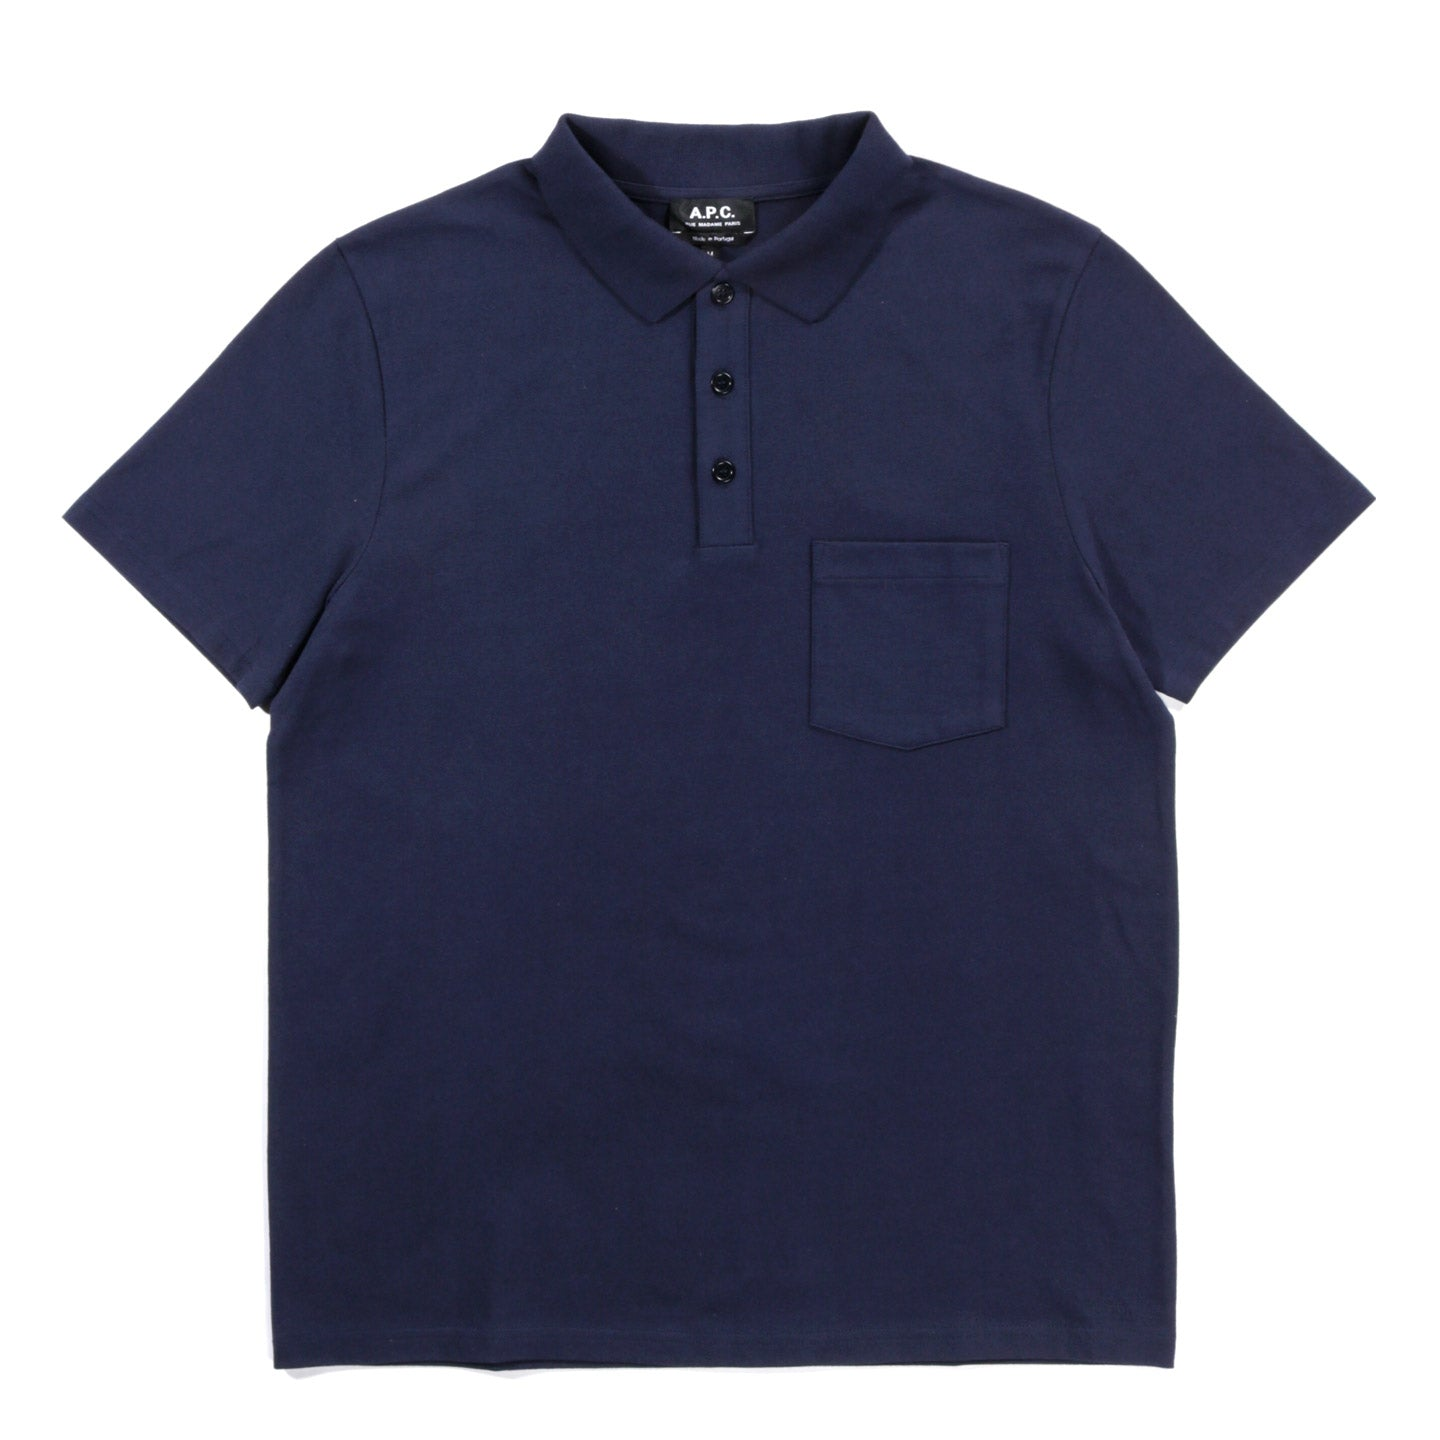 A.P.C. ARCHIE POLO NAVY